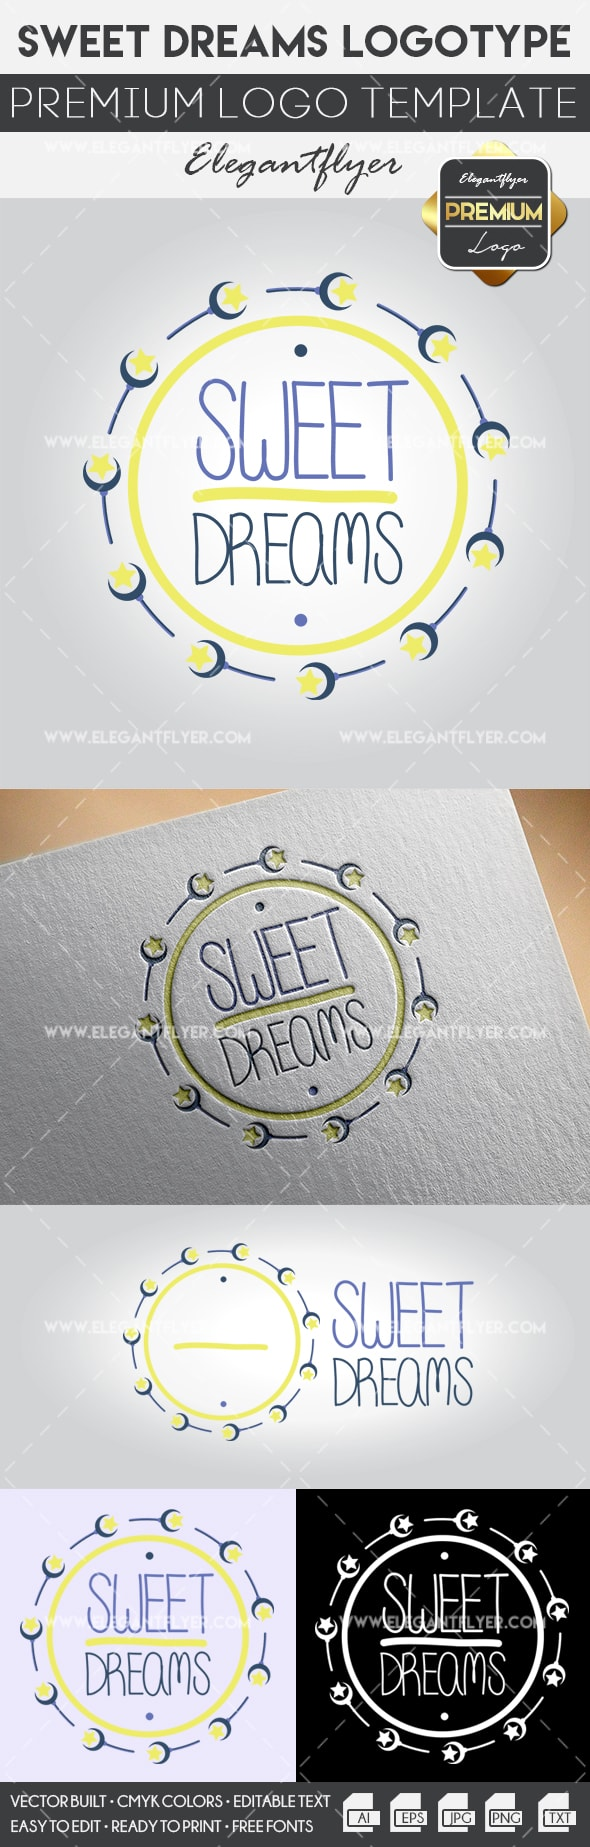 Sweet Dreams – Premium Logo Template